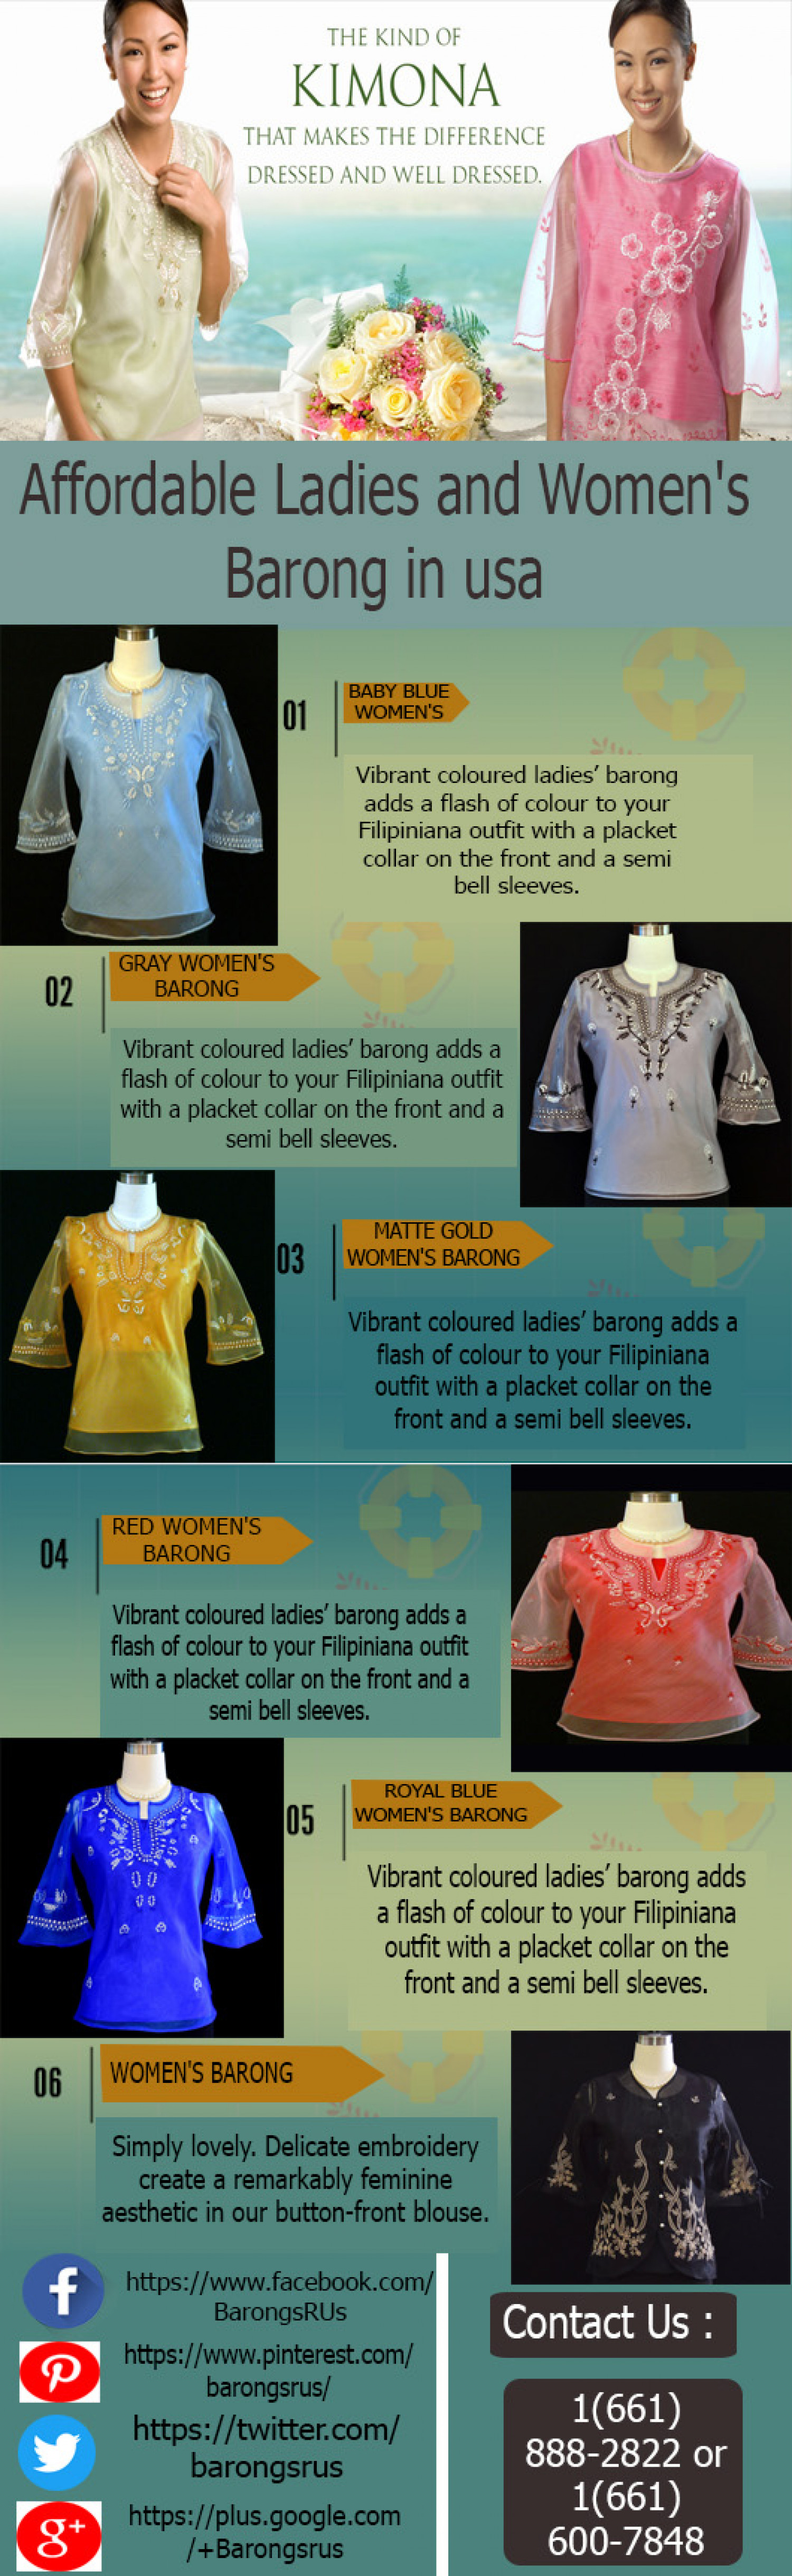 Affordable Ladies and Women's Barong in USA Infographic